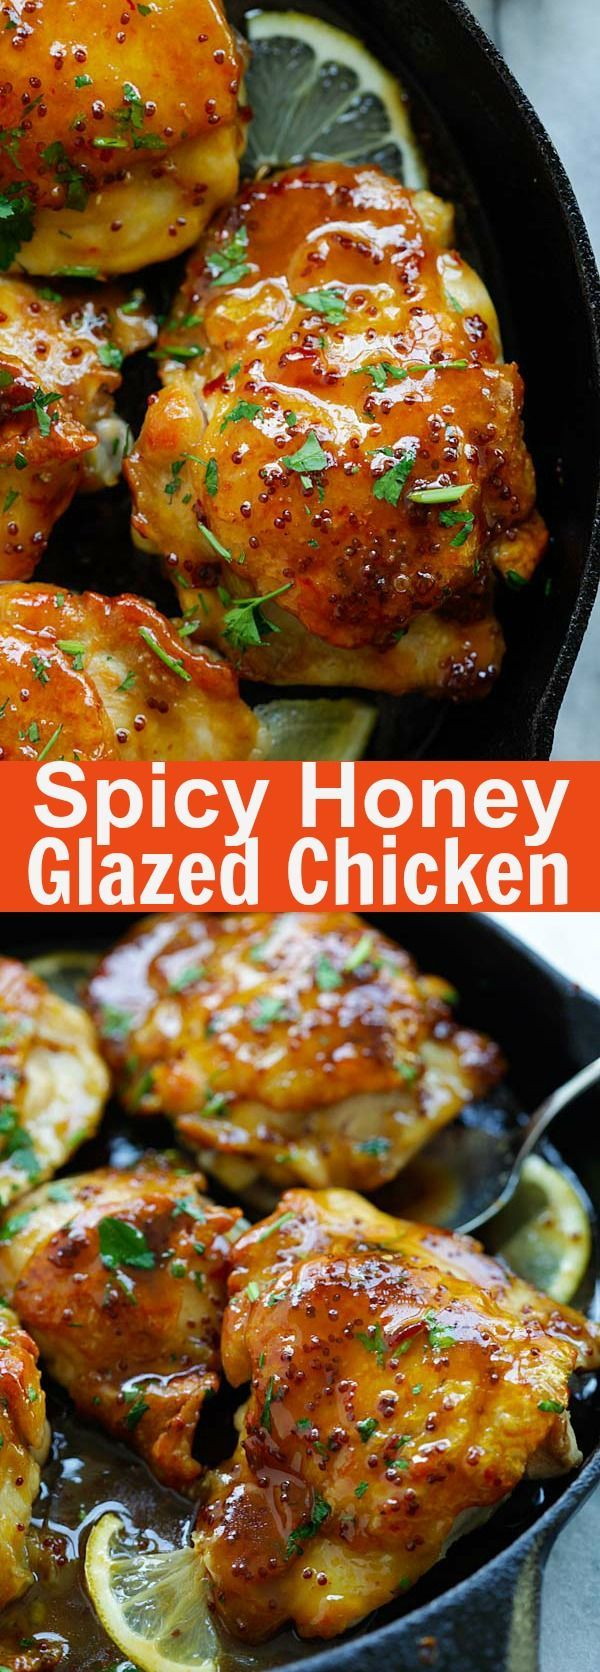 Spicy Honey-Glazed Chicken – the best skillet chicken dinner ever, in a spicy and sweet honey glaze. Takes 20 mins to make | http://rasamalaysia.com